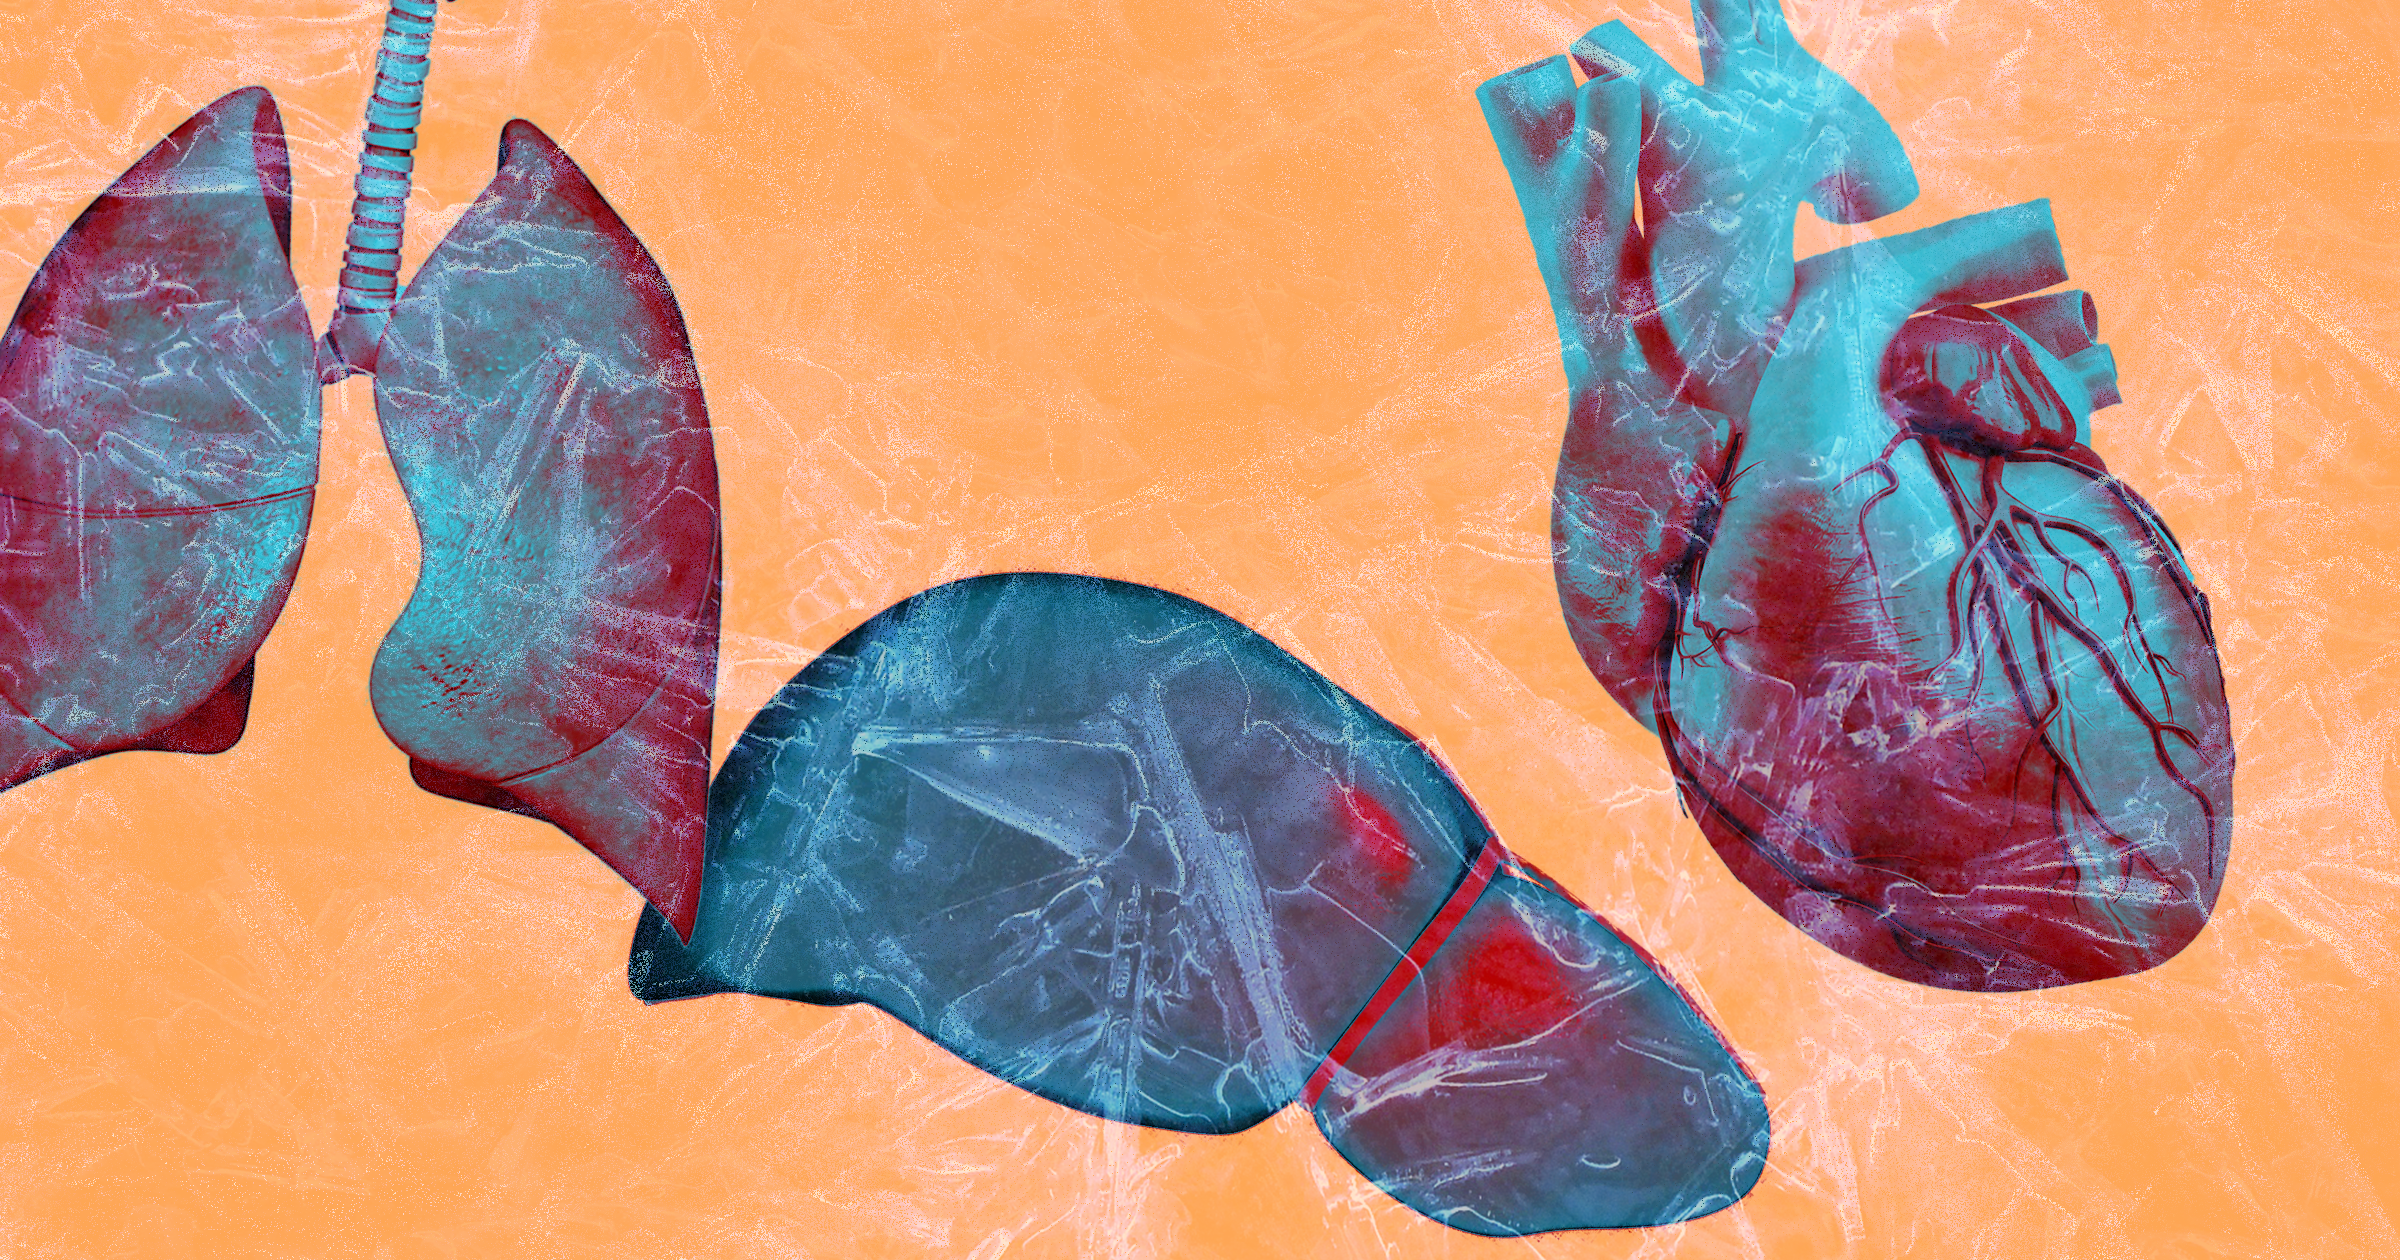 Freezing And Storing Donated Organs Could Eliminate Some Transplant